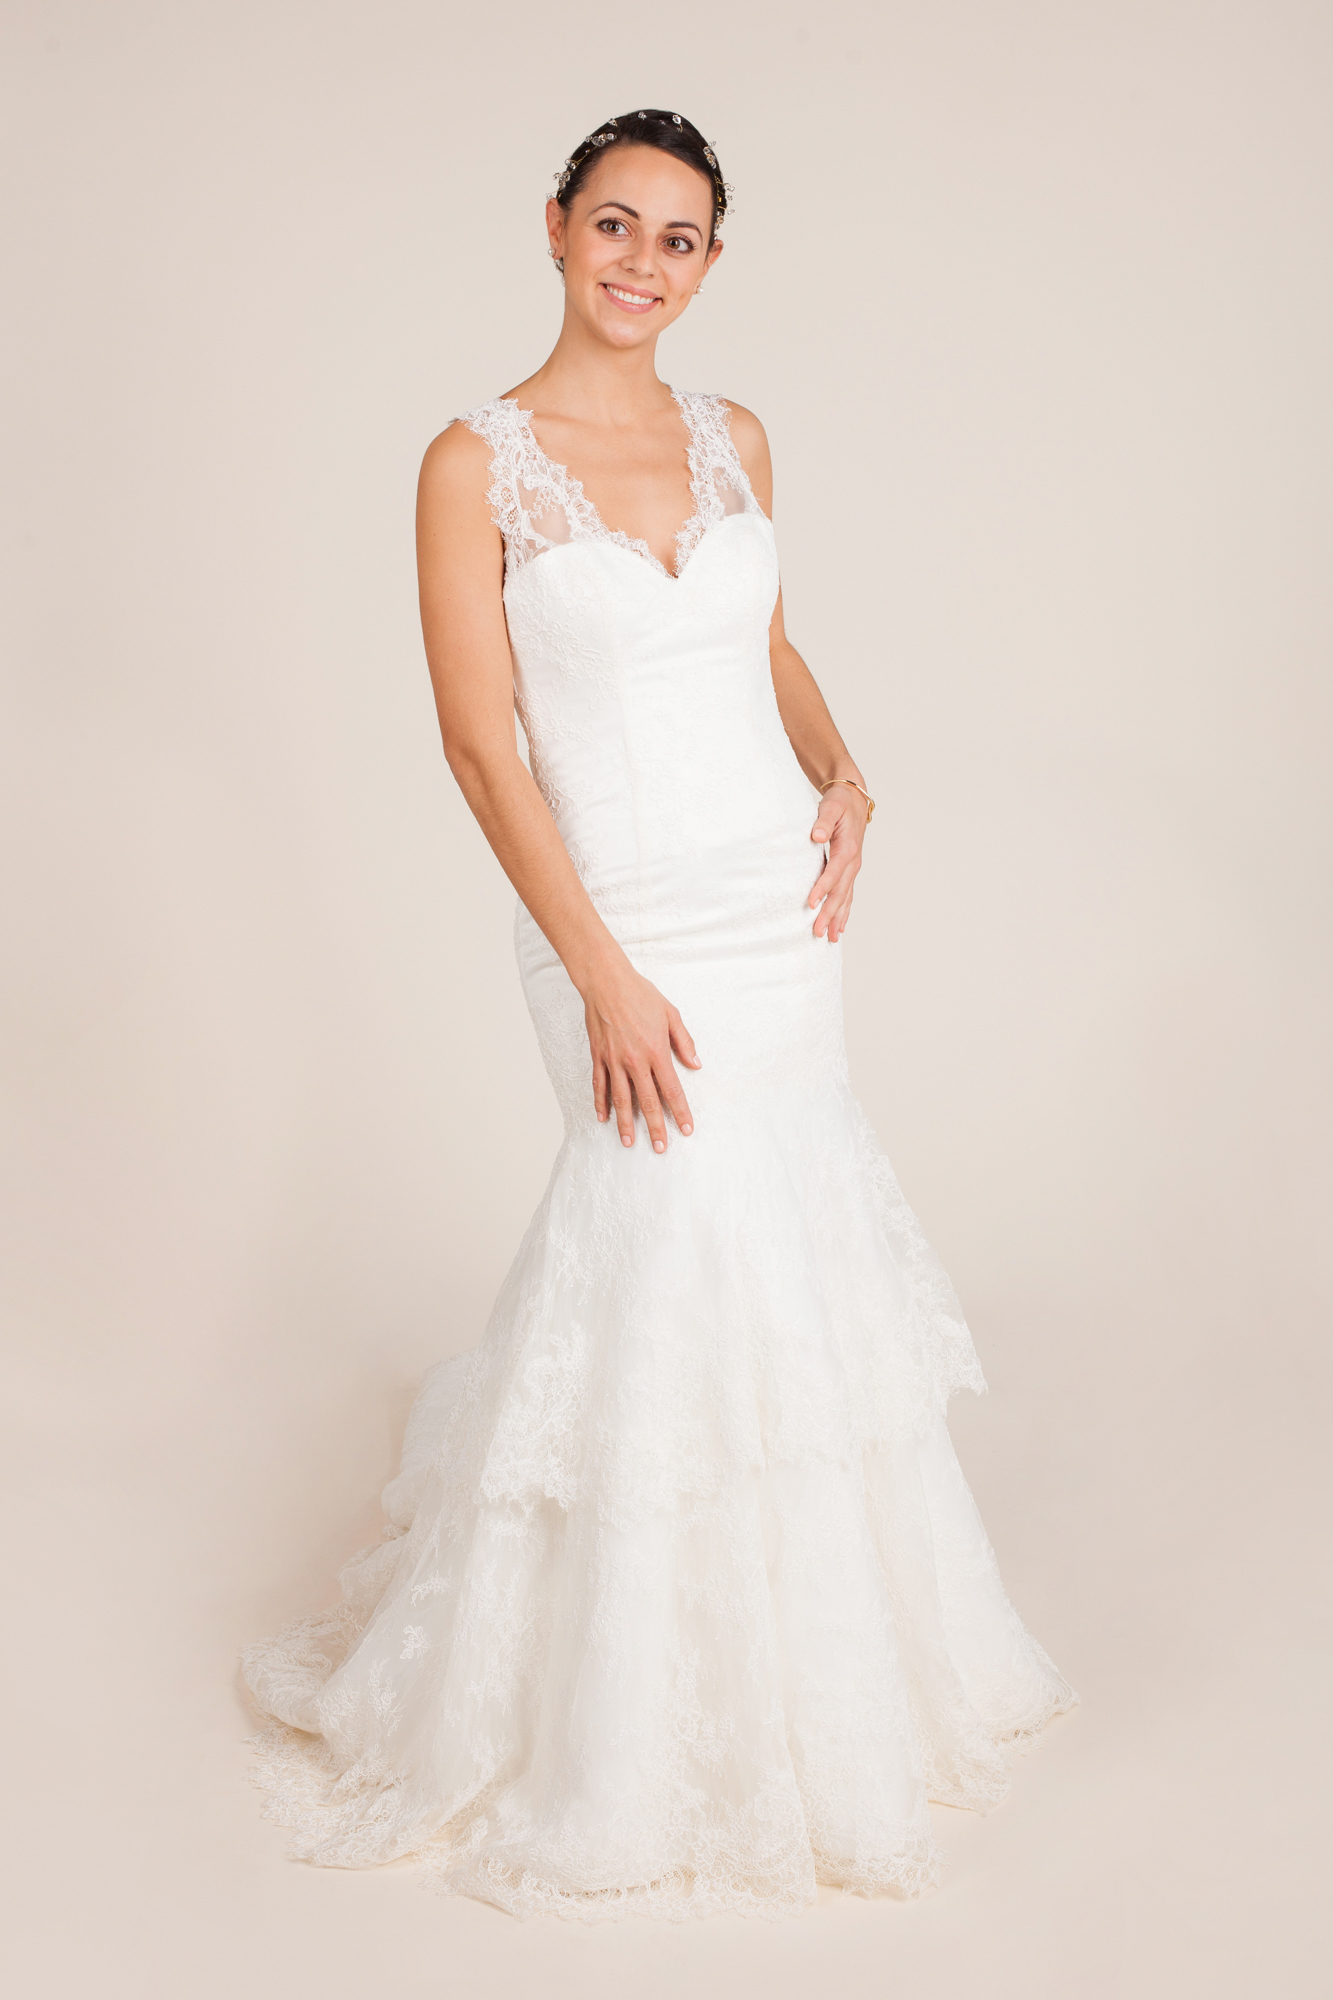 Allure bridals size  - $750 - (73% OFF)